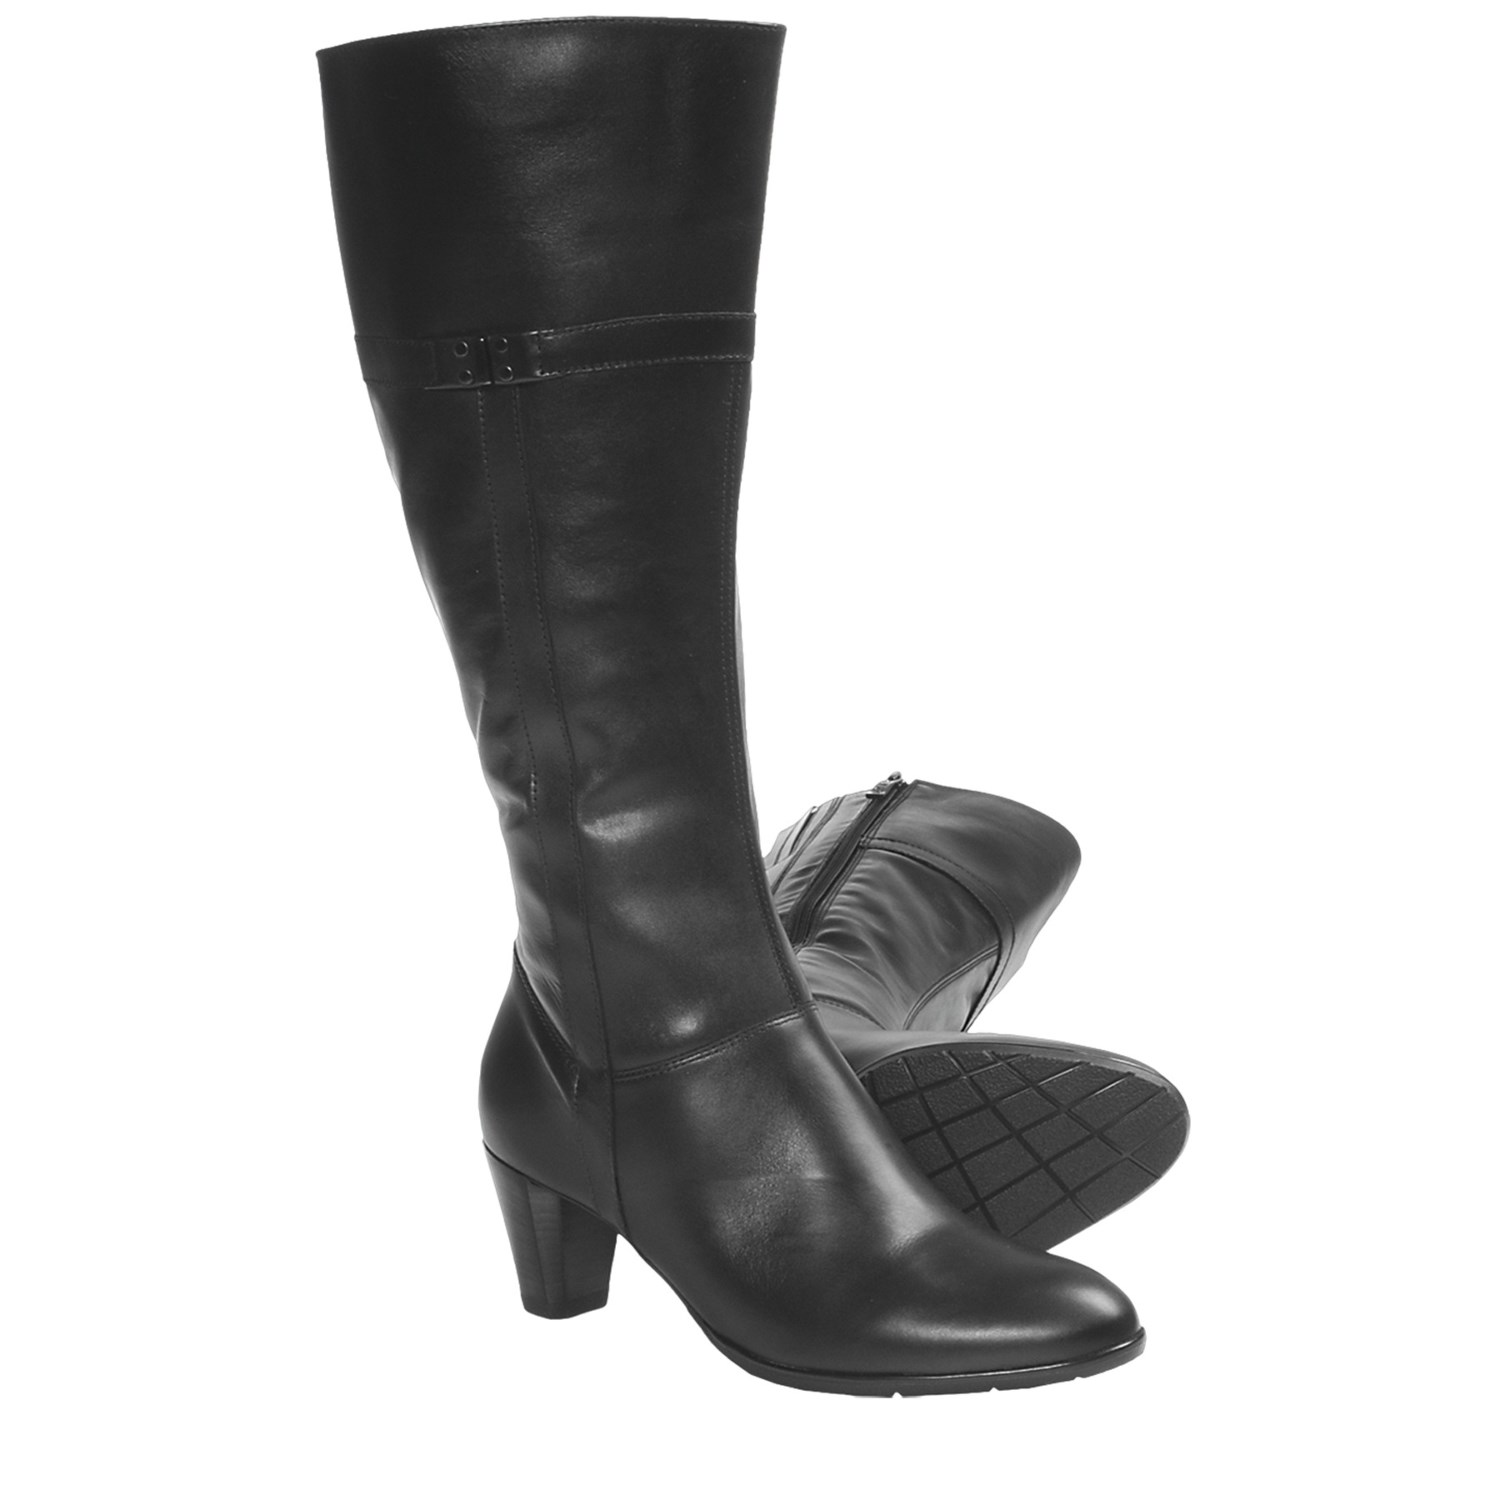 Original Payless Shoesource Worldwide Inc  Webinfo  Payless Shoesource Worldwide Inc   Knee High Boots 2206 Black  High Heels, Suede Boots, Zip Up Knee High Boots 2206 Black  High Heel Boots For $94 Listed By